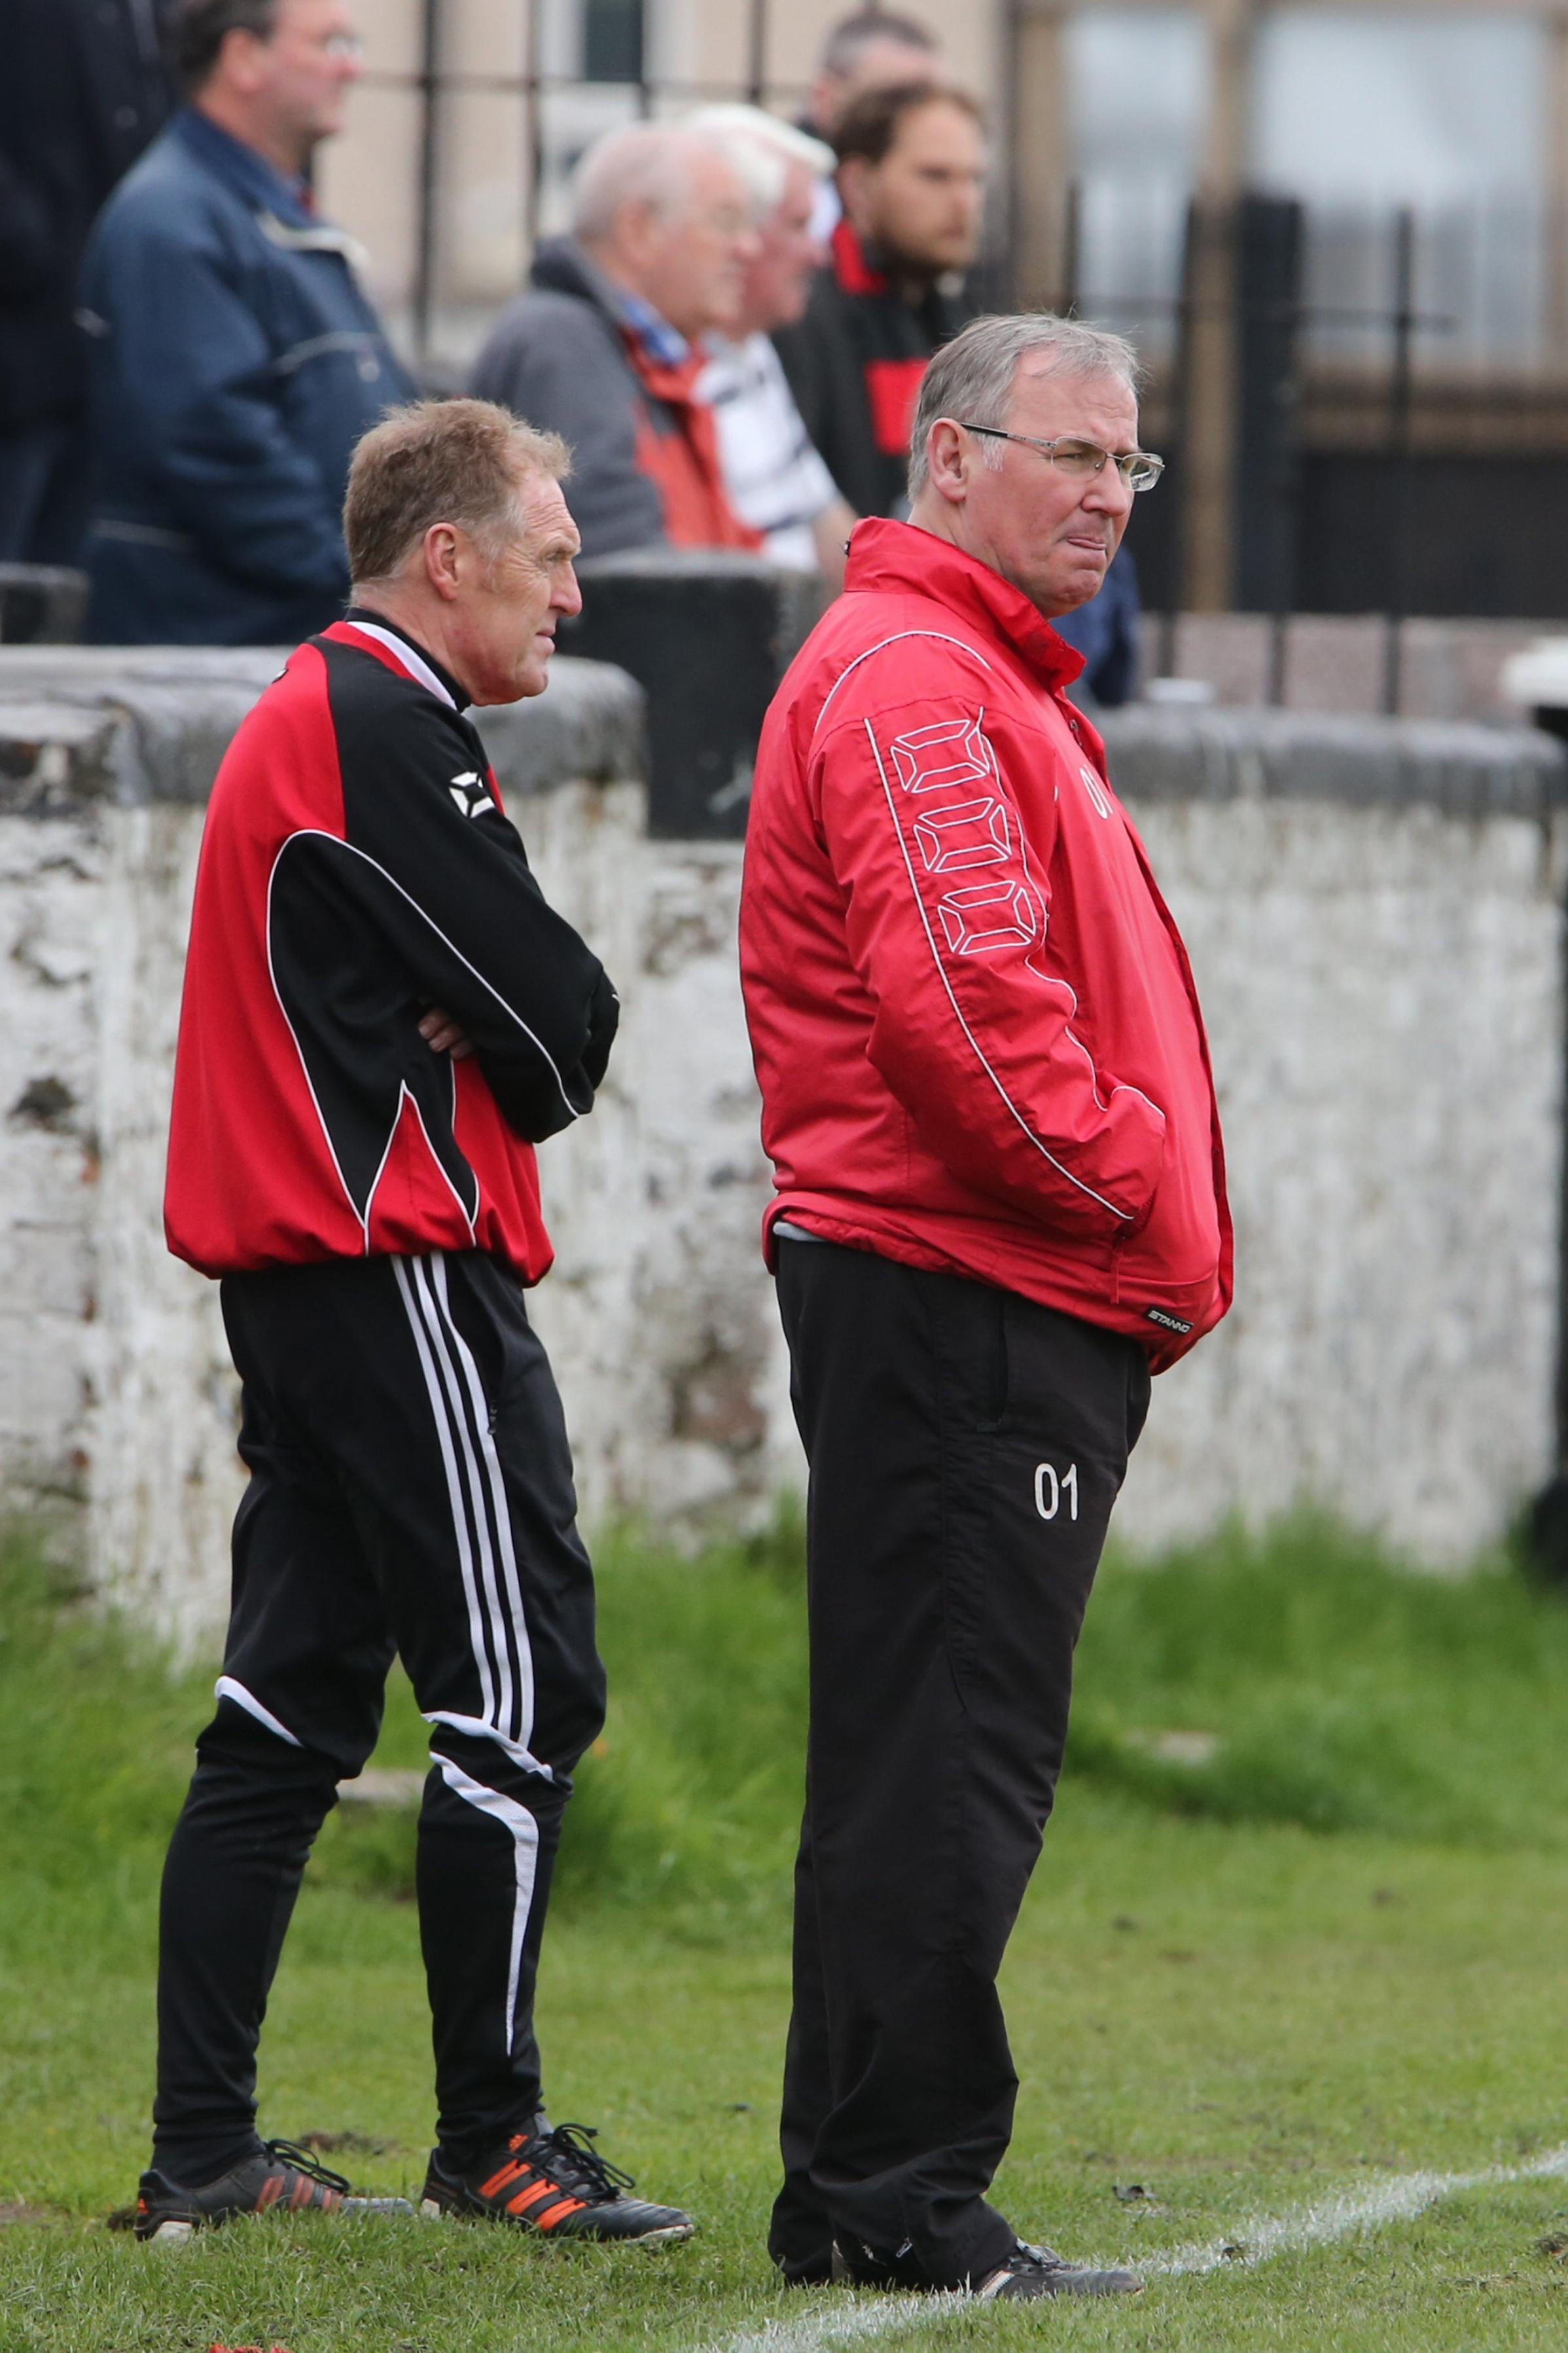 Port Glasgow boss Brian Heron is coming up against one of his old clubs, Maryhill, in a friendly on Saturday